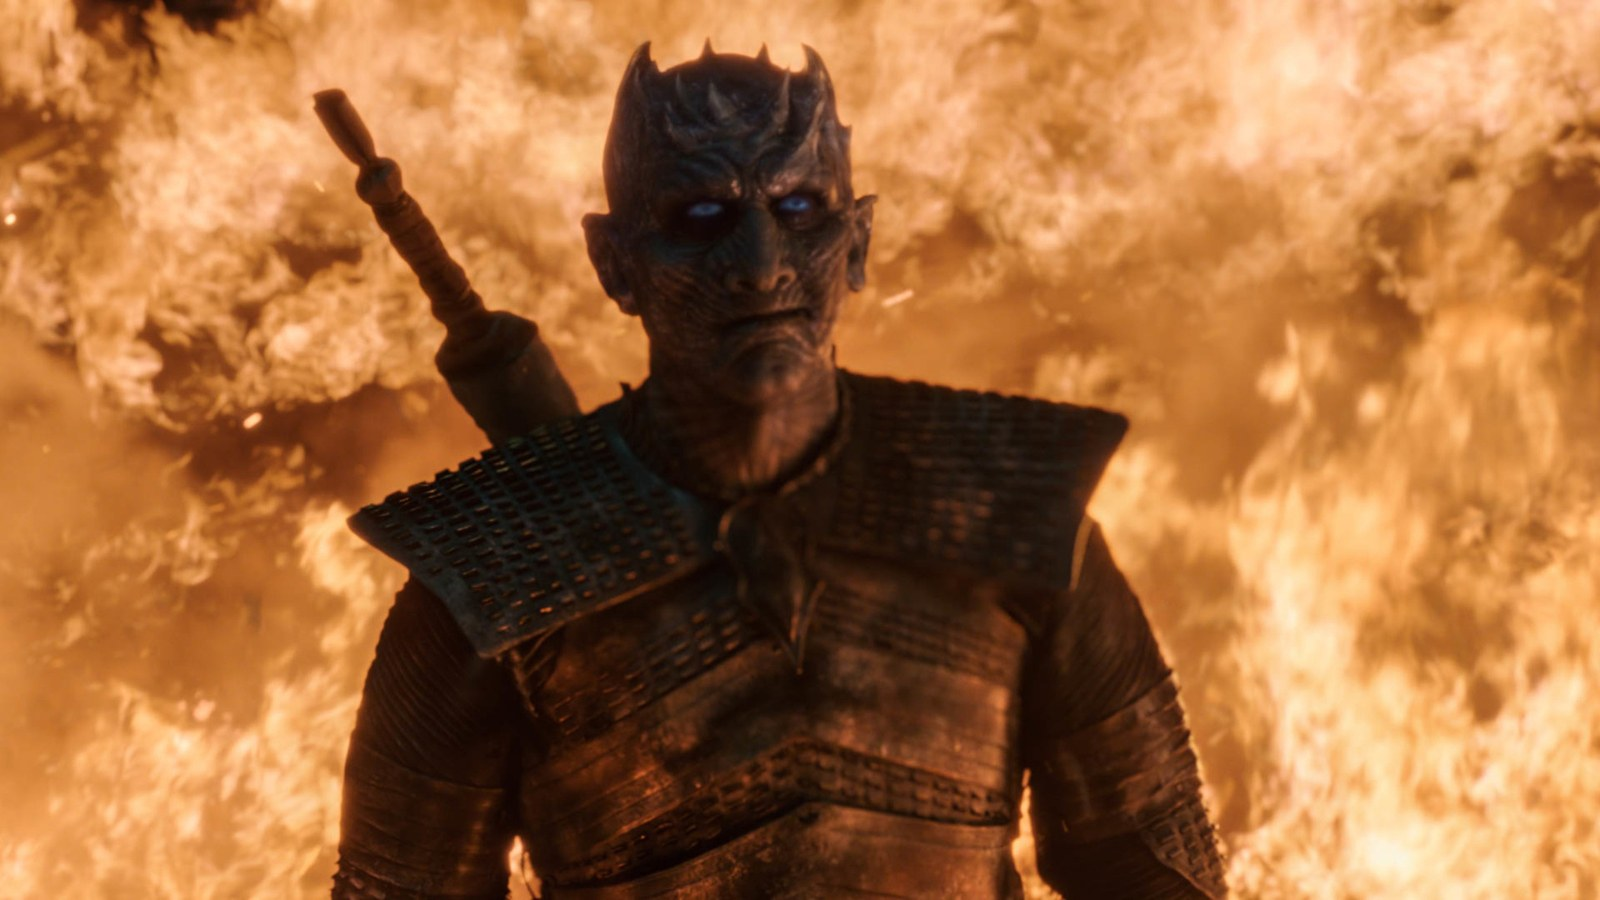 The Night King on Game of Thrones season eight.